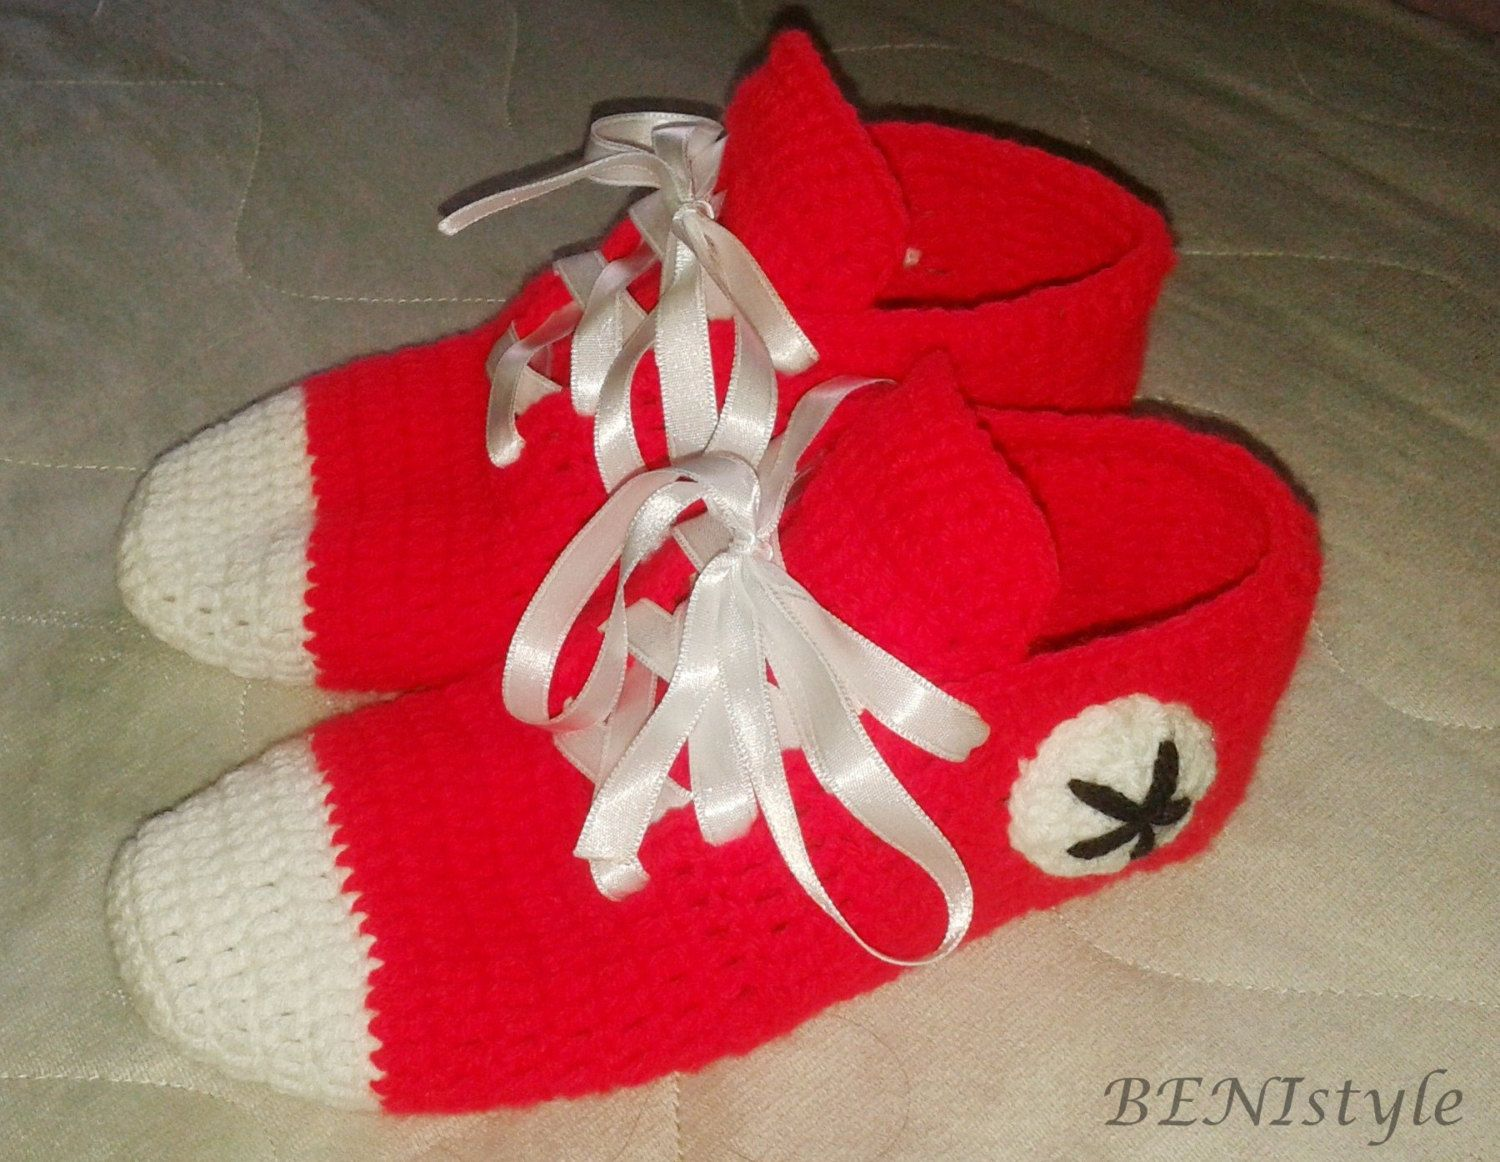 Crochet Converse Slippers, Women Converse Slippers, Women Home Slippers, Home Shoes, Adult Size, Red Converse Slippers, by BENIstyle on Etsy